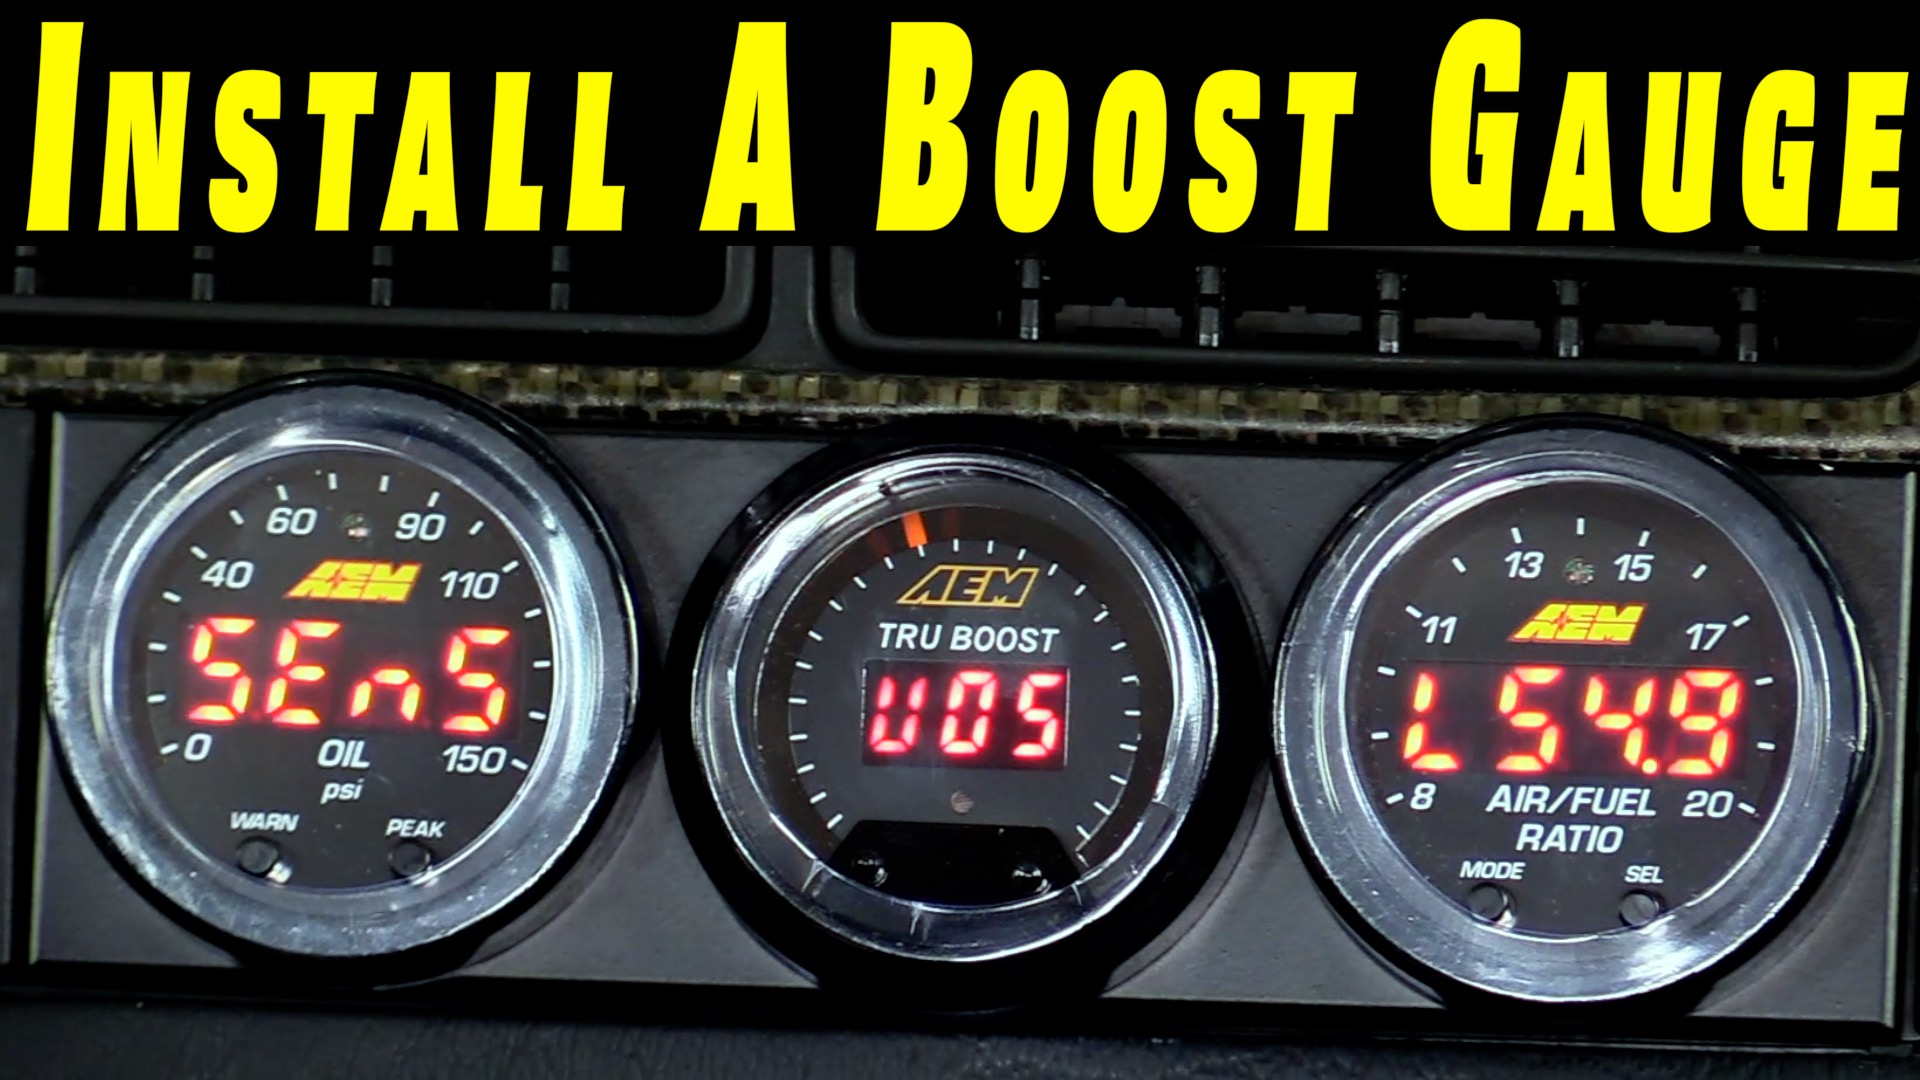 How To Install A Boost Gauge On Any Car | Humble Mechanic